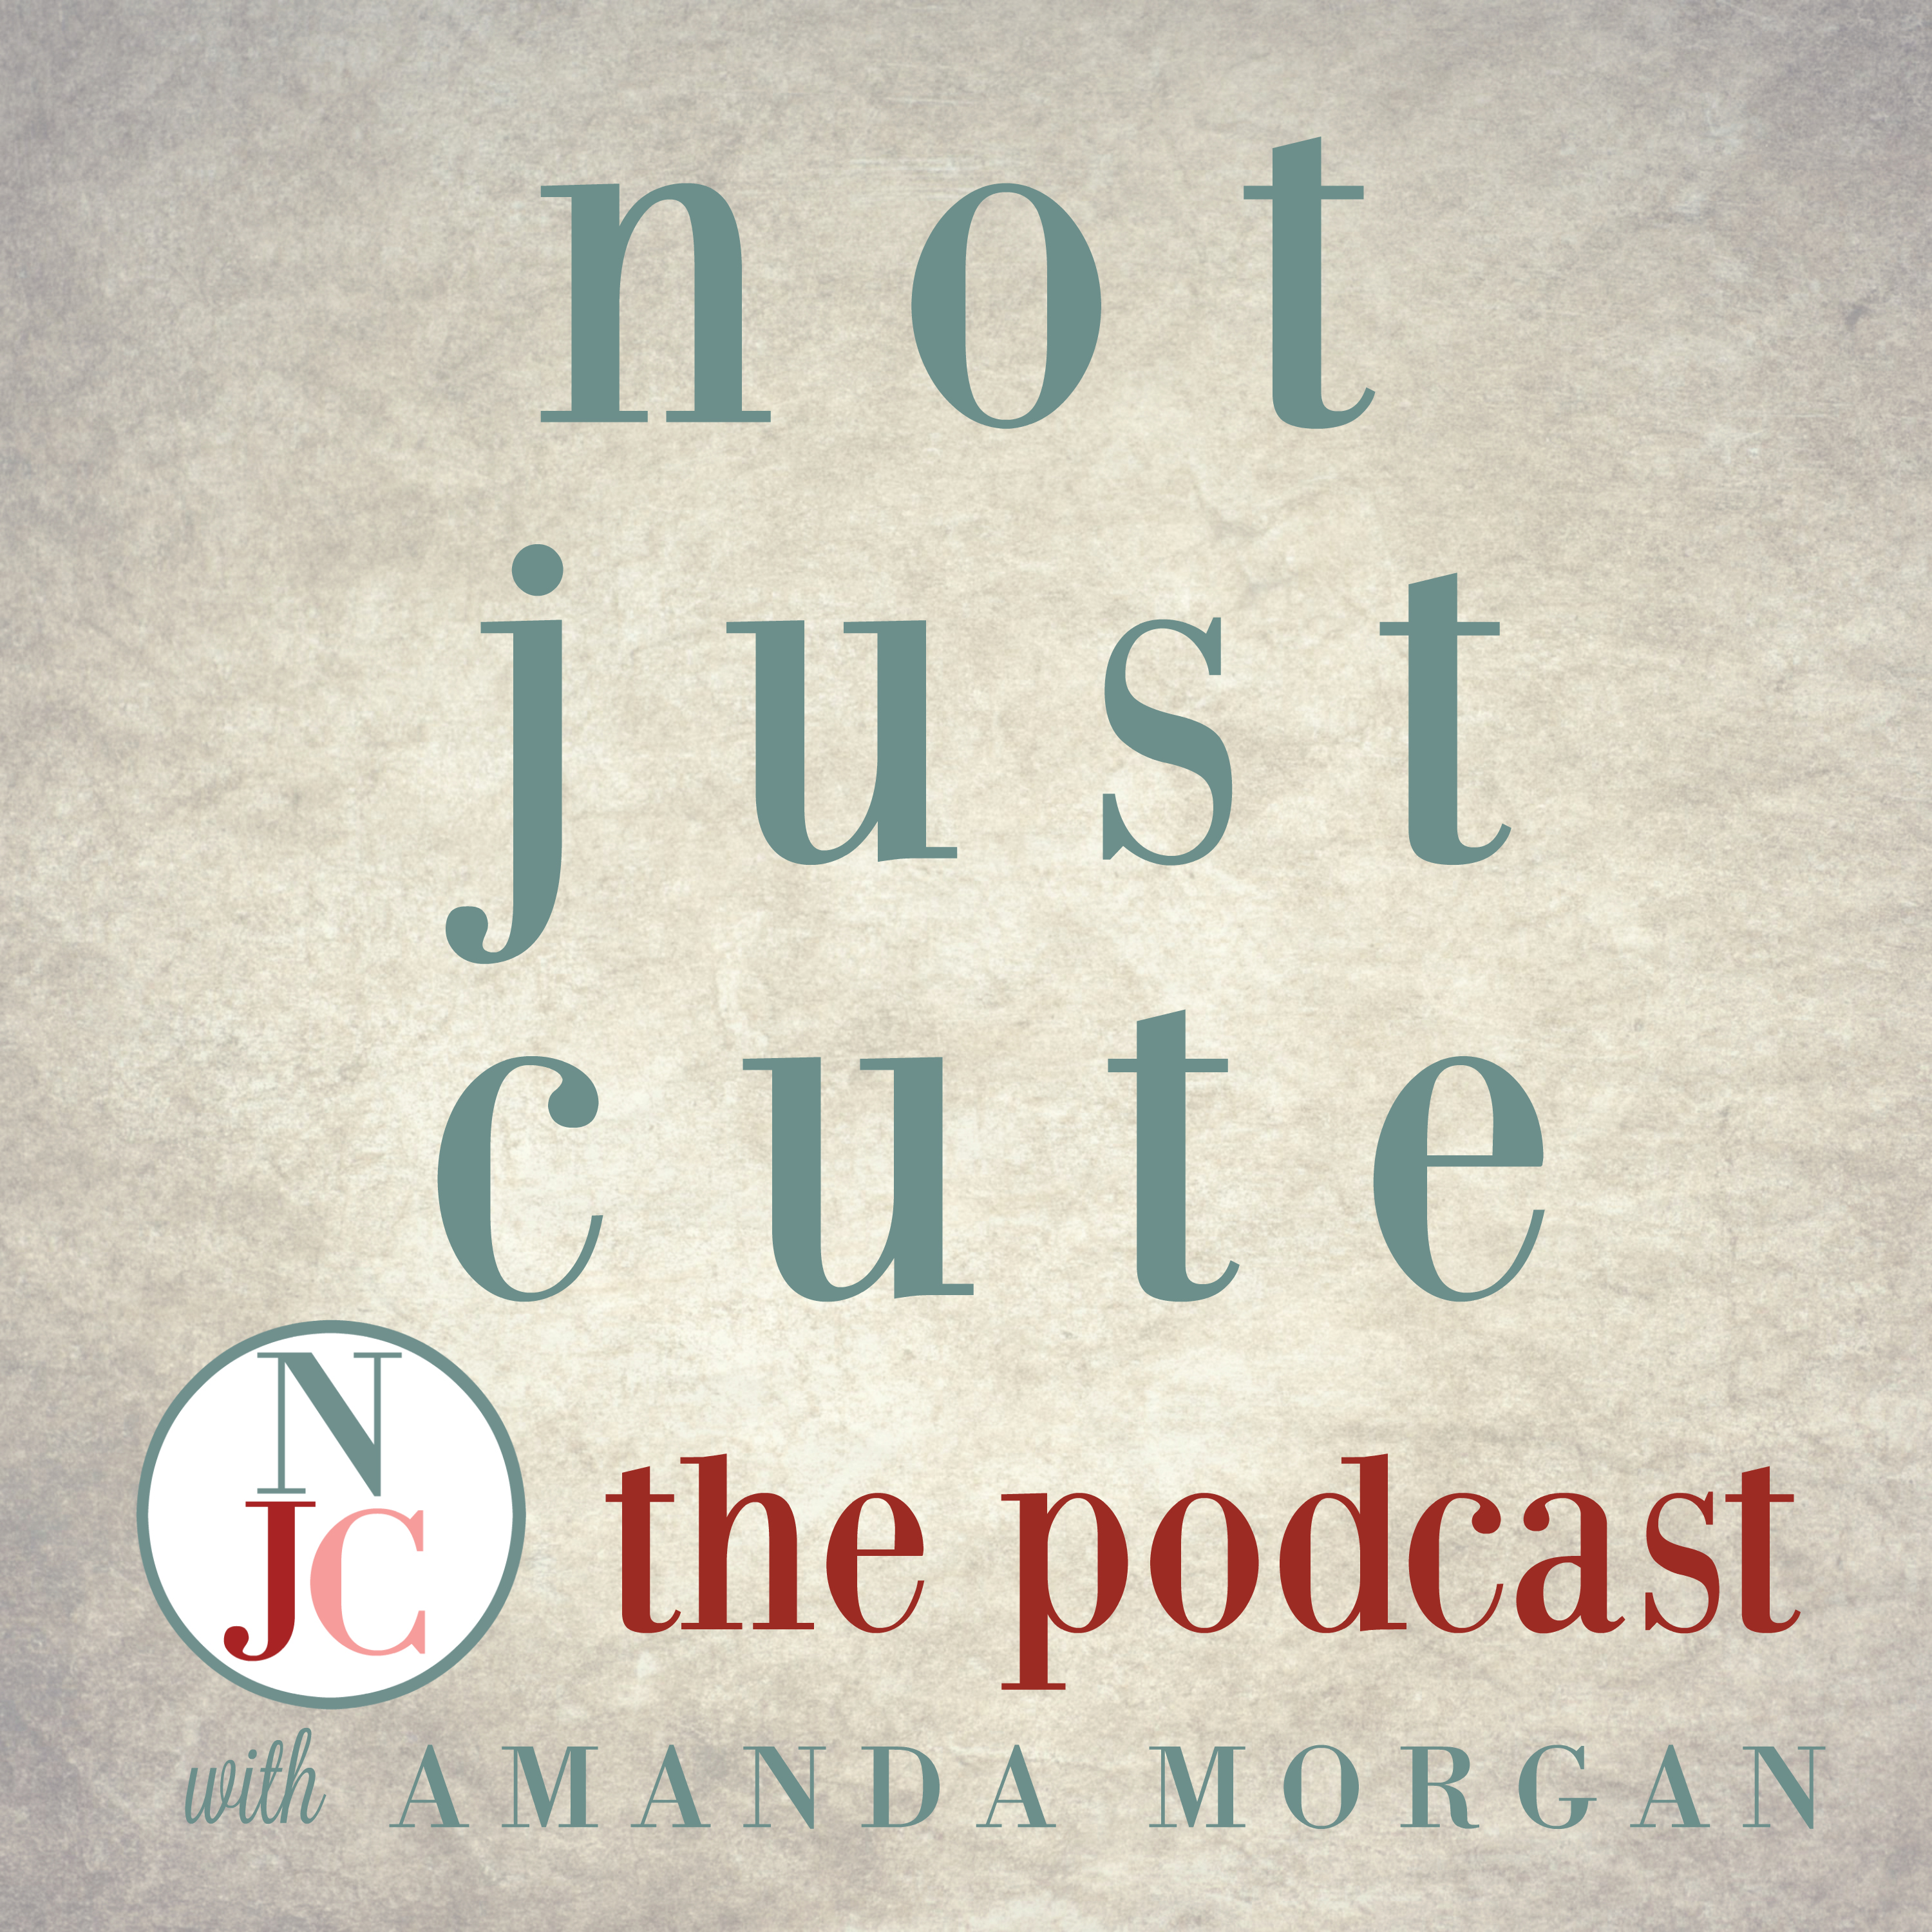 Not Just Cute, the Podcast: Intentional Whole Child Development for Parents and Teachers of Young Children show image